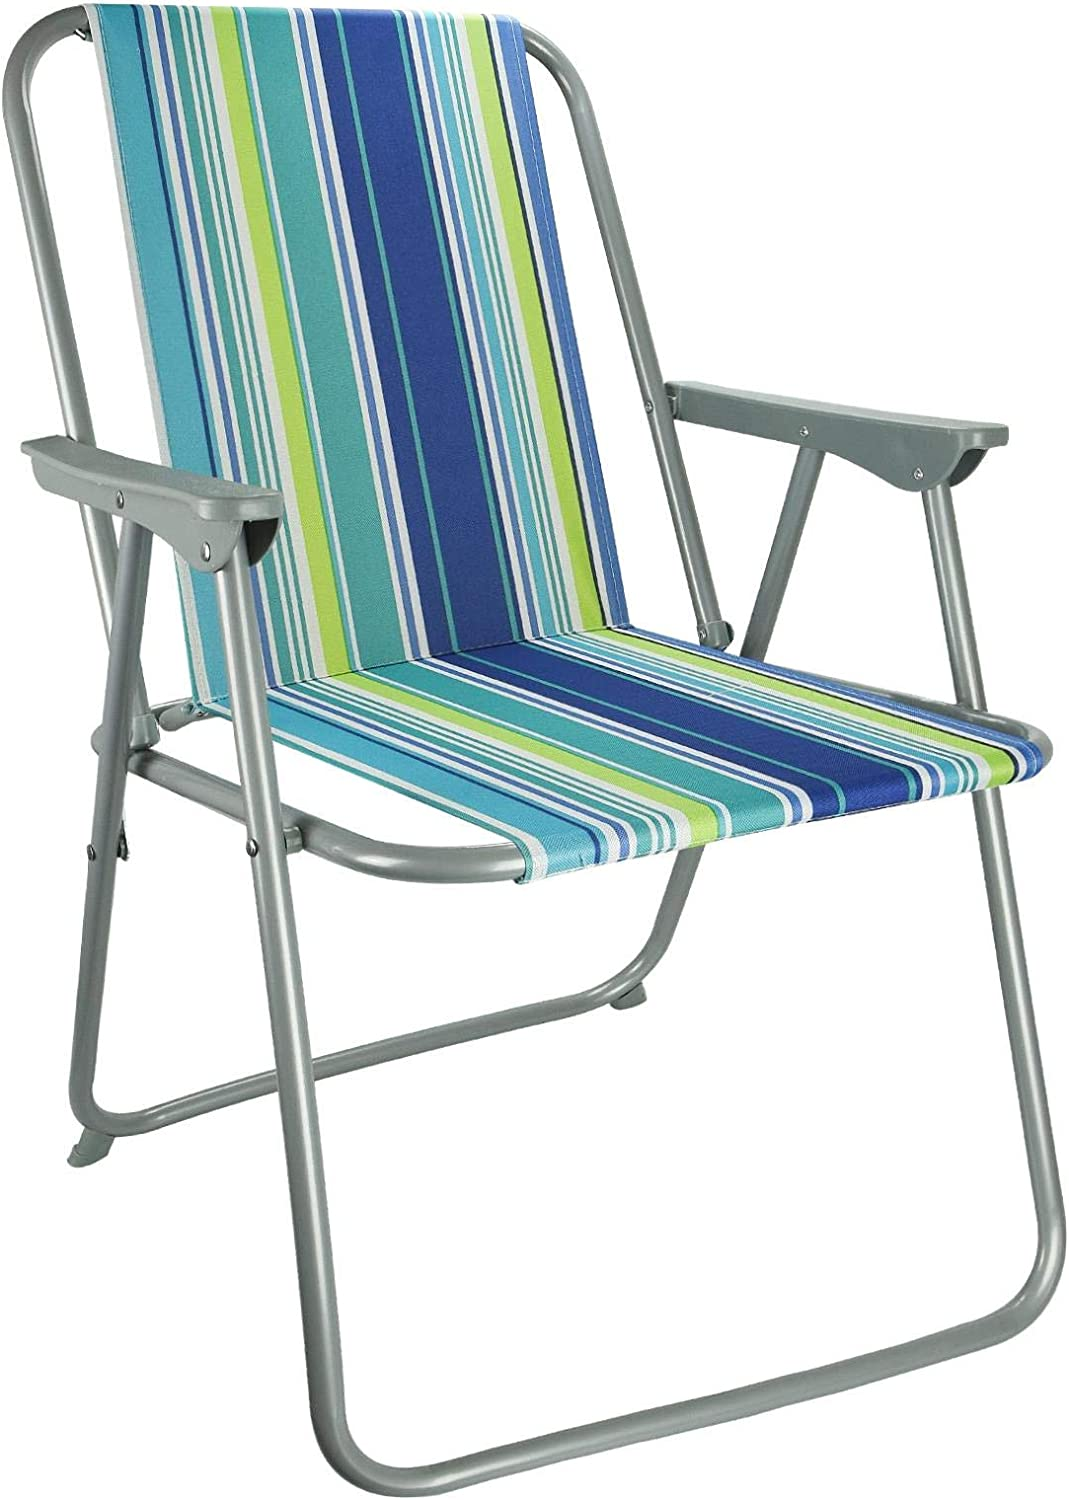 ASAB Folding Garden Patio Spring Deck Chair With Arms & Comfortable Fabric Seat Picnic Camping Beach Fishing Outdoor - Stripe